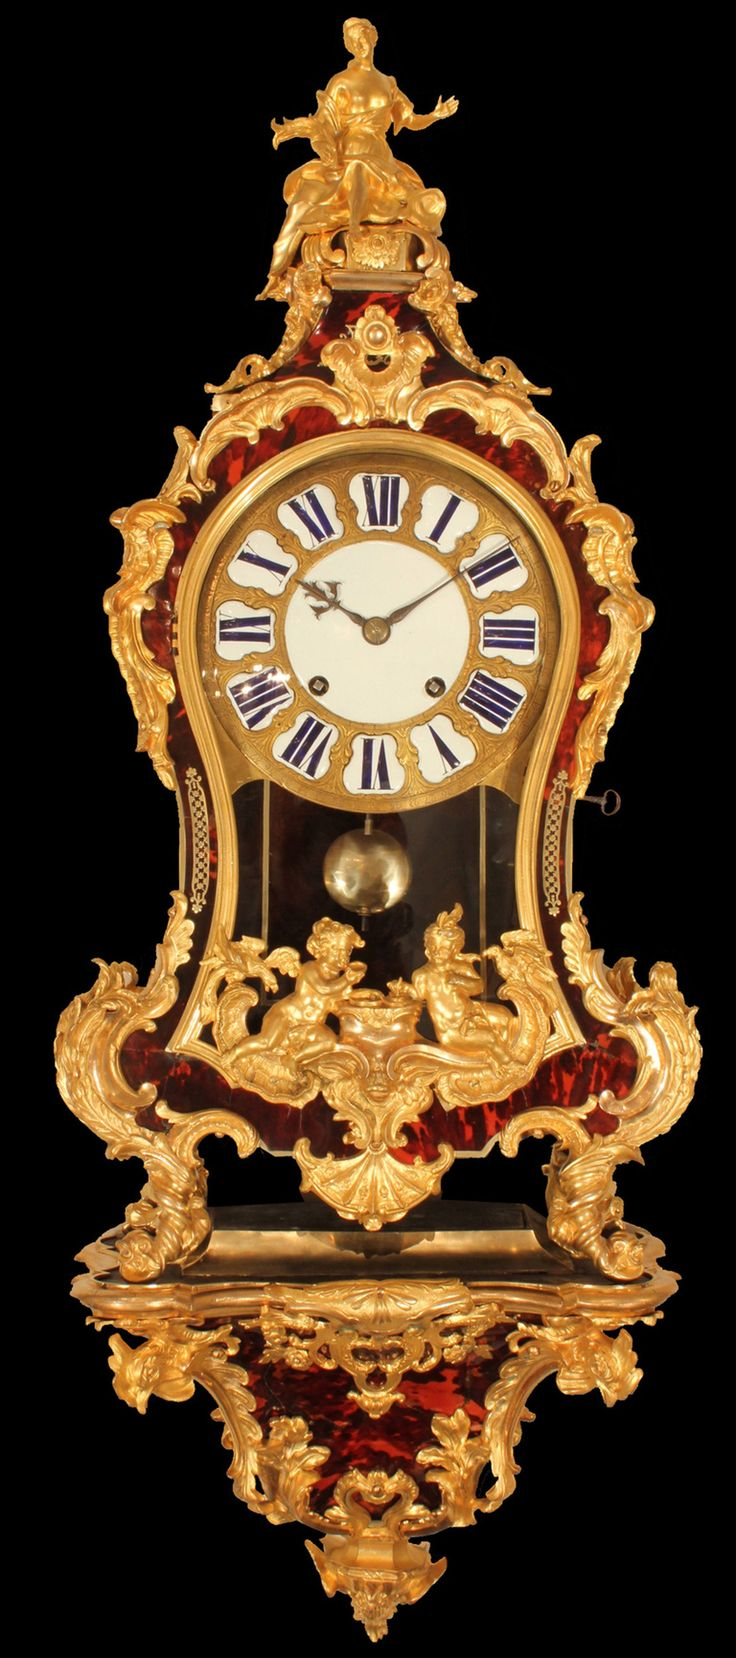 33 best antiques images on pinterest chinese porcelain and ceramics spectacular and very high quality louis xv tortoiseshell and ormolu mounted cartel clock france beg amipublicfo Image collections